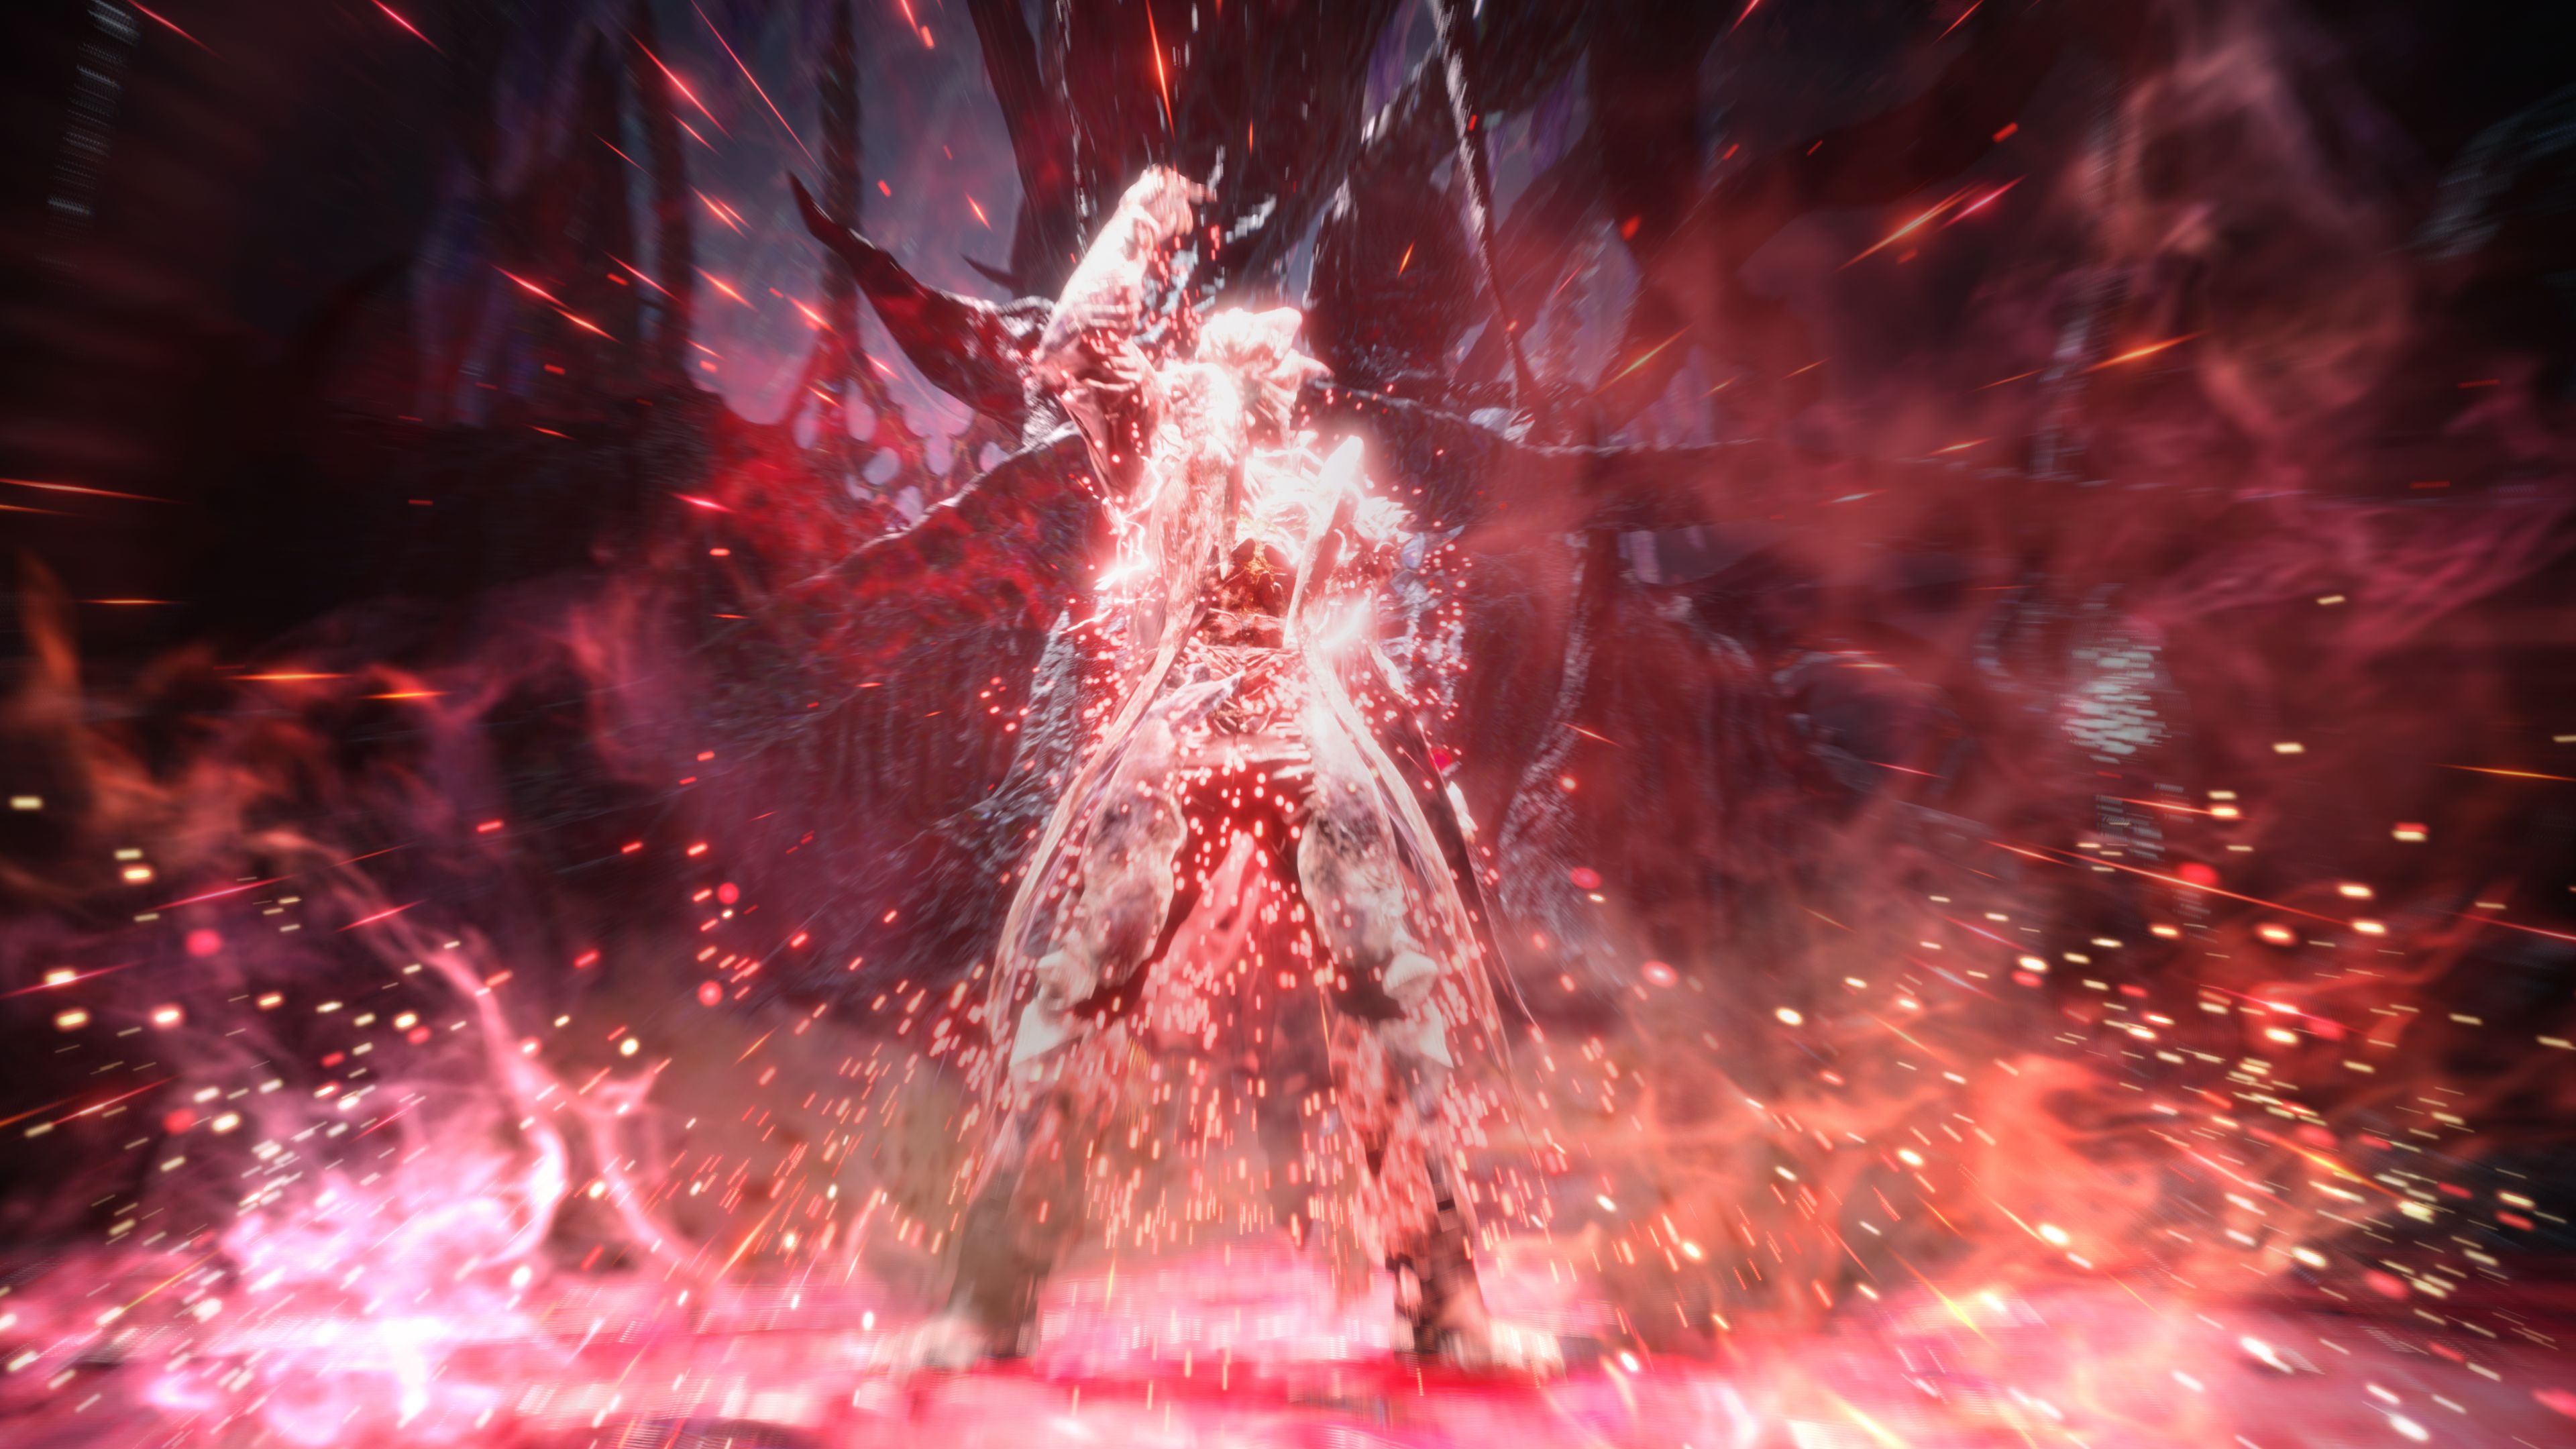 dmc5_screens_dante-deviltrigger03